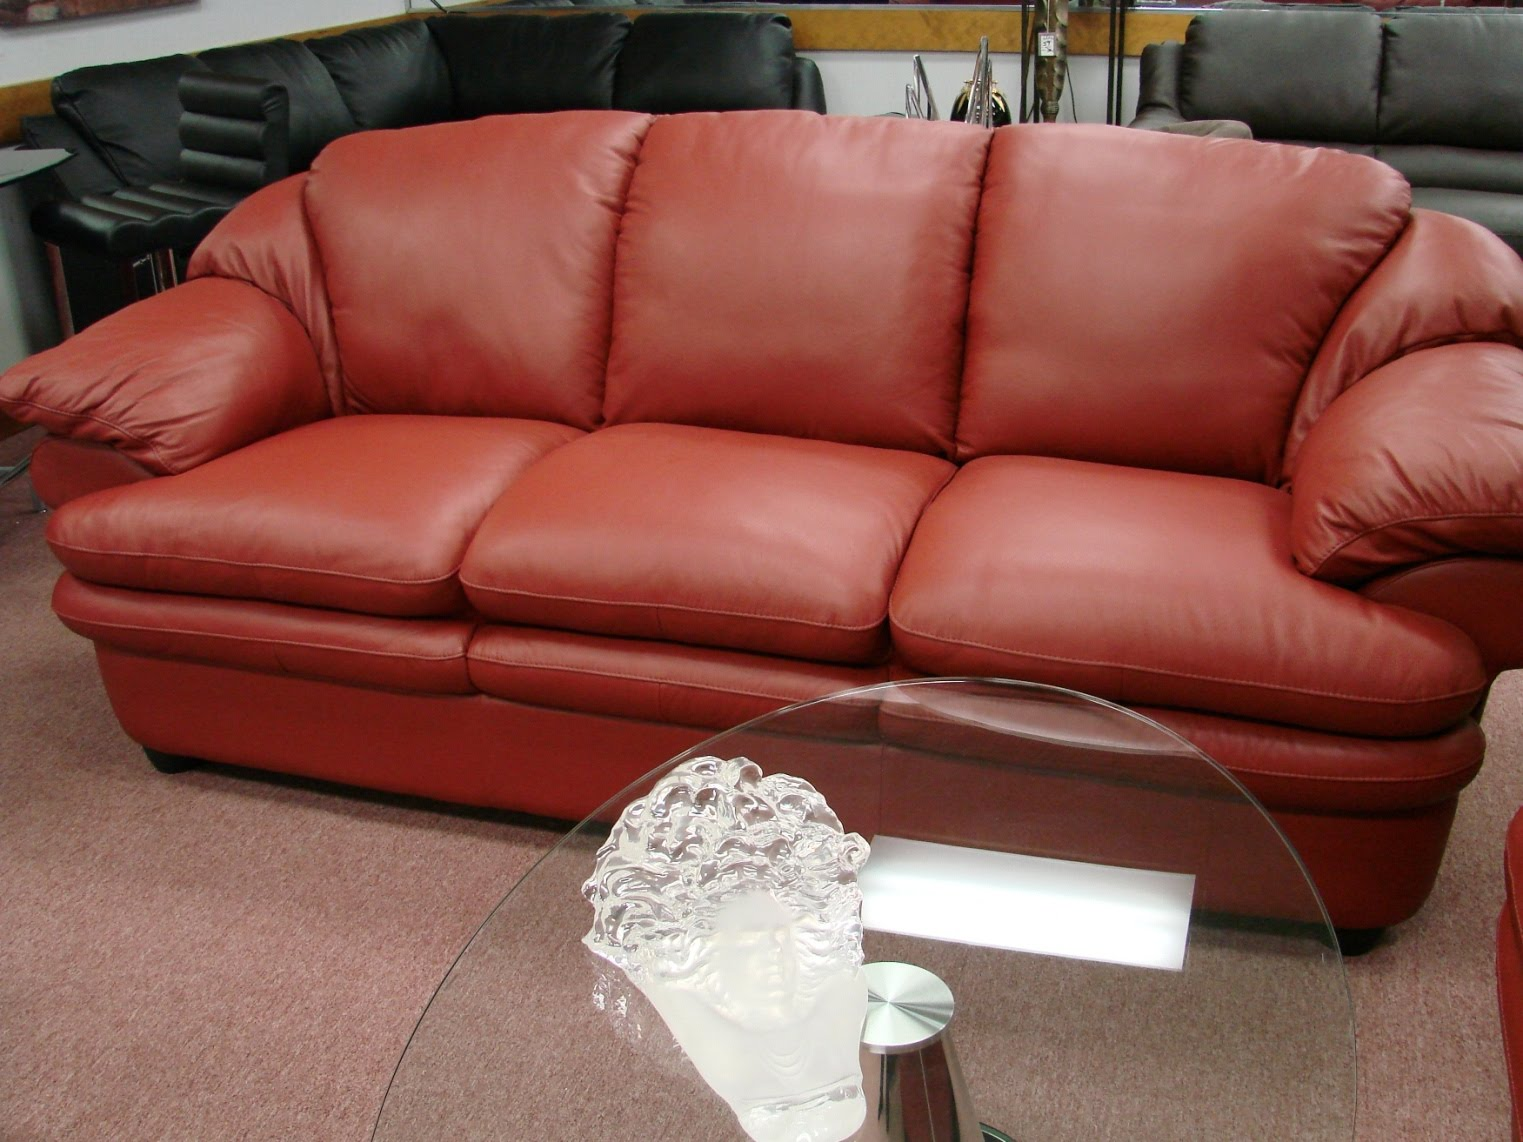 Natuzzi Leather Sofas Sectionals By Interior Concepts Furniture Photos Of Natuzzi Leather